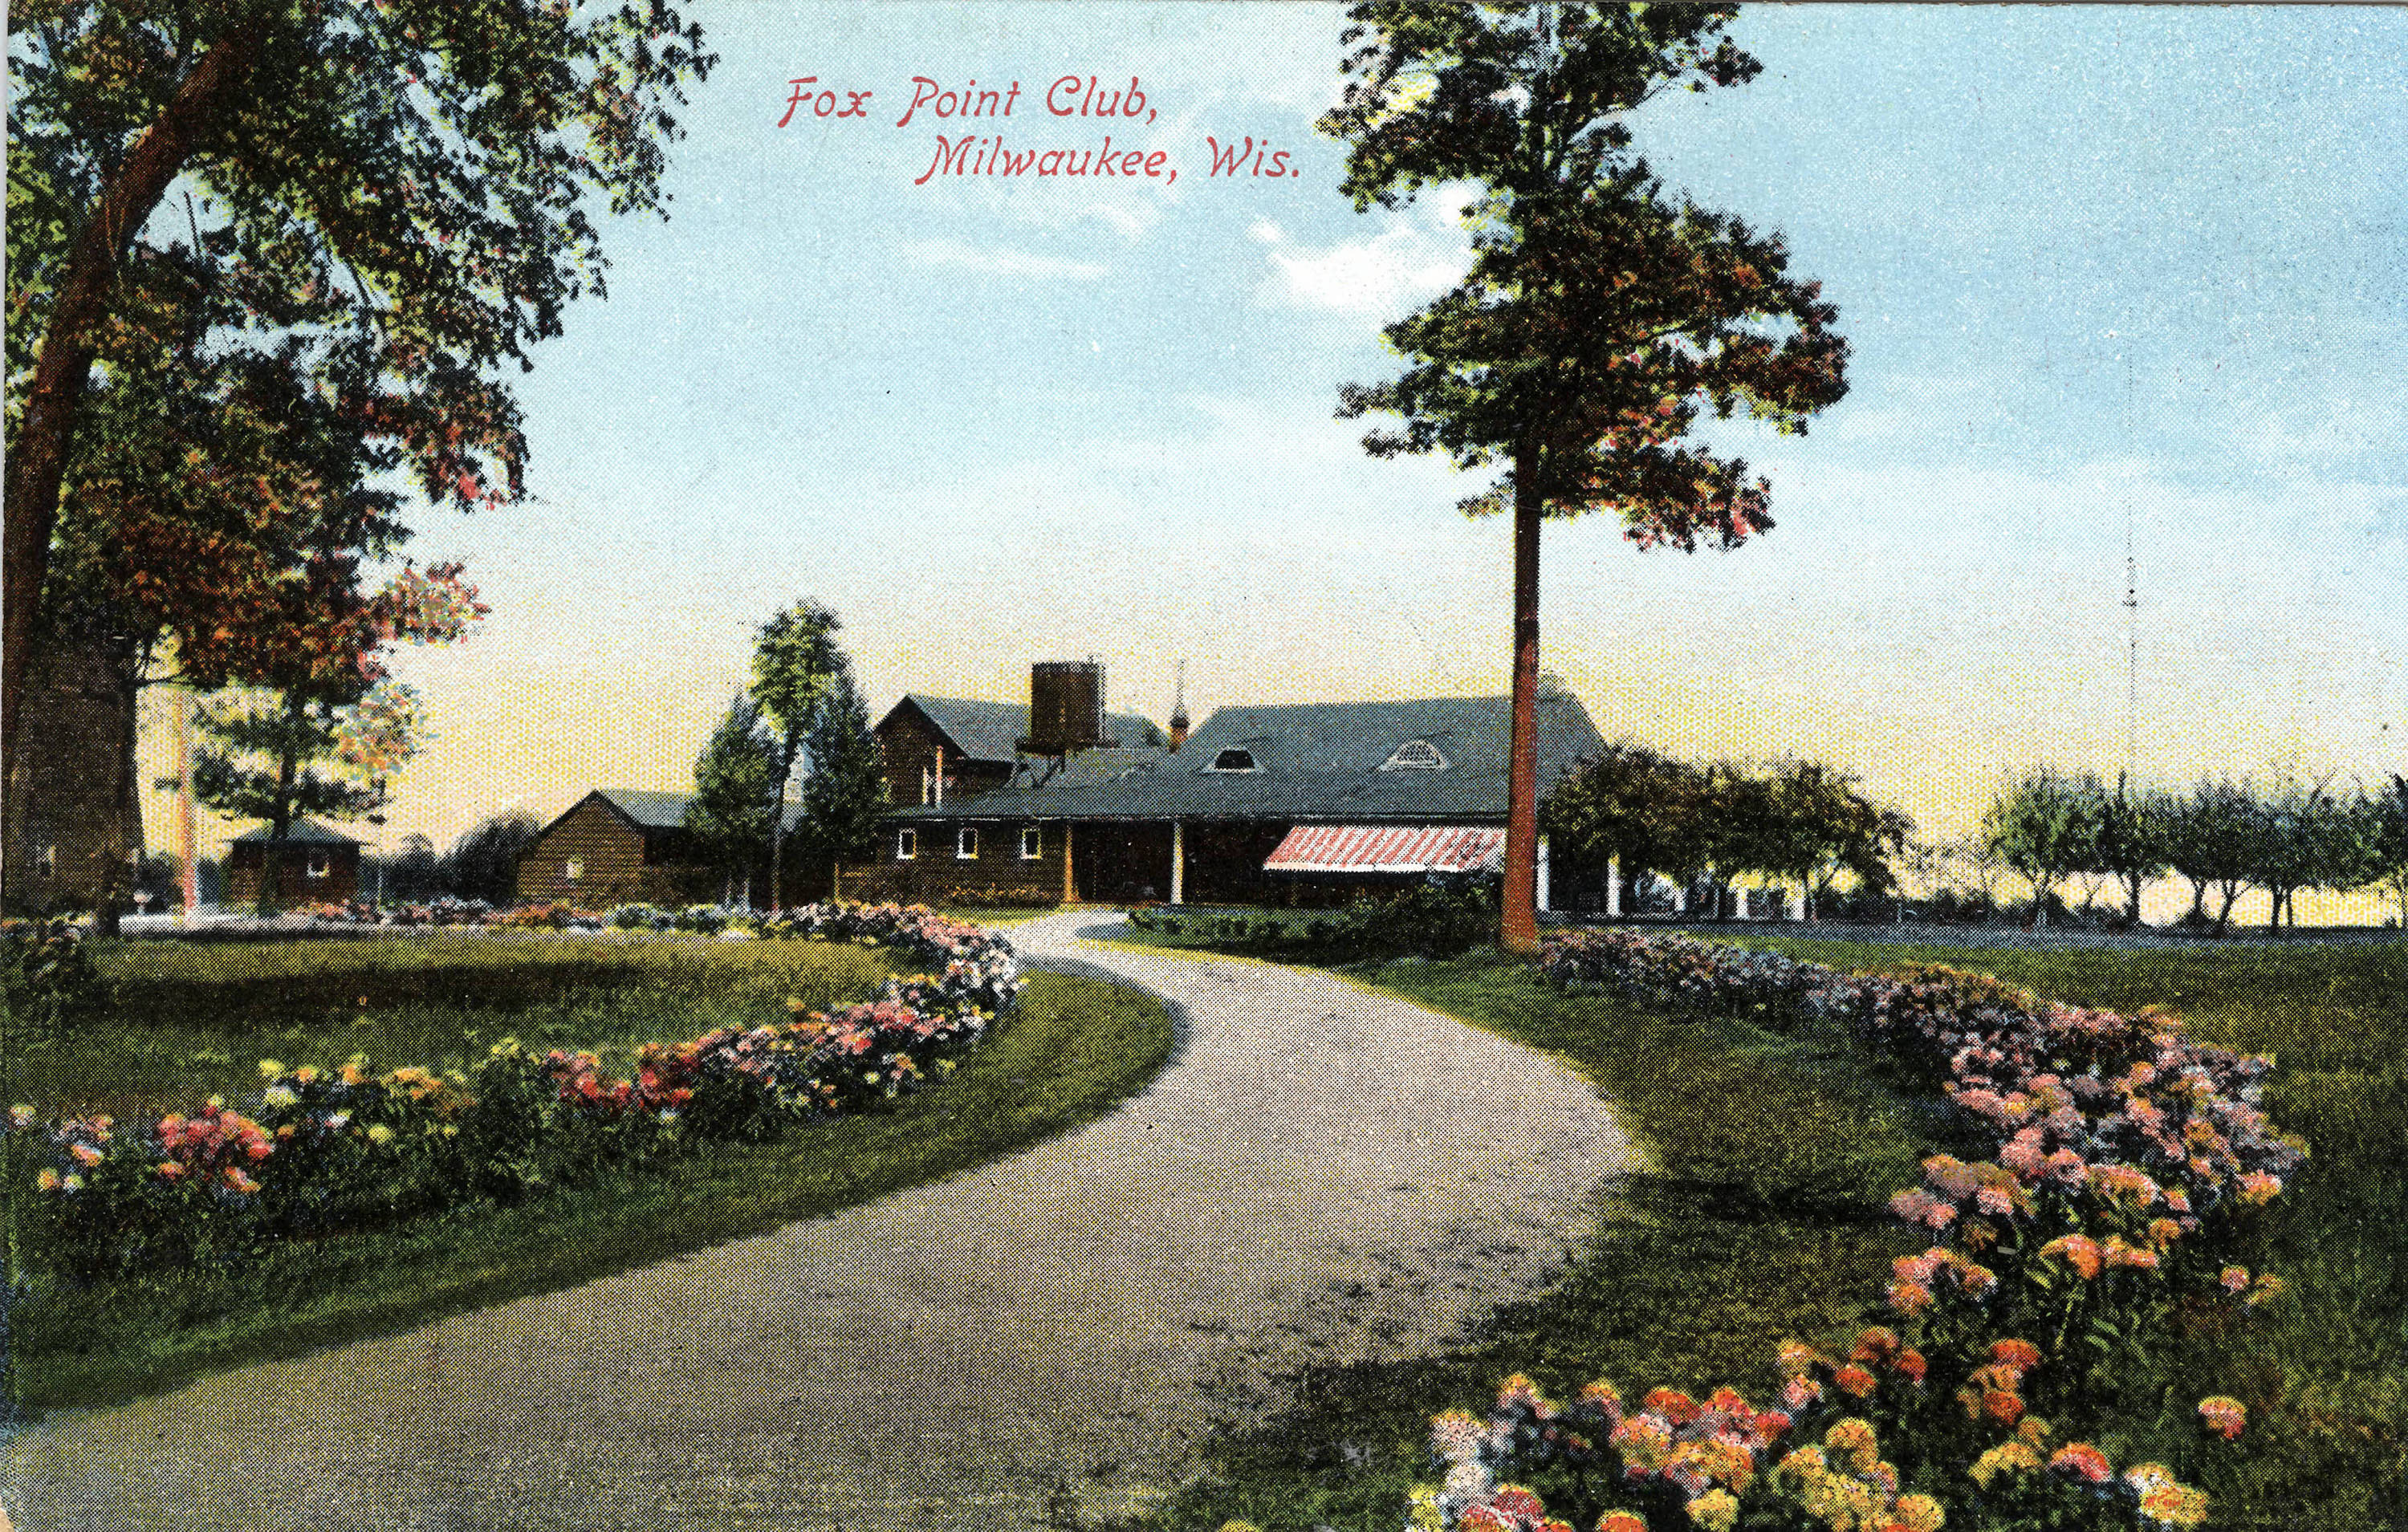 The Fox Point Club was established by the community's early visitors and served as a popular gathering place for the wealthy.